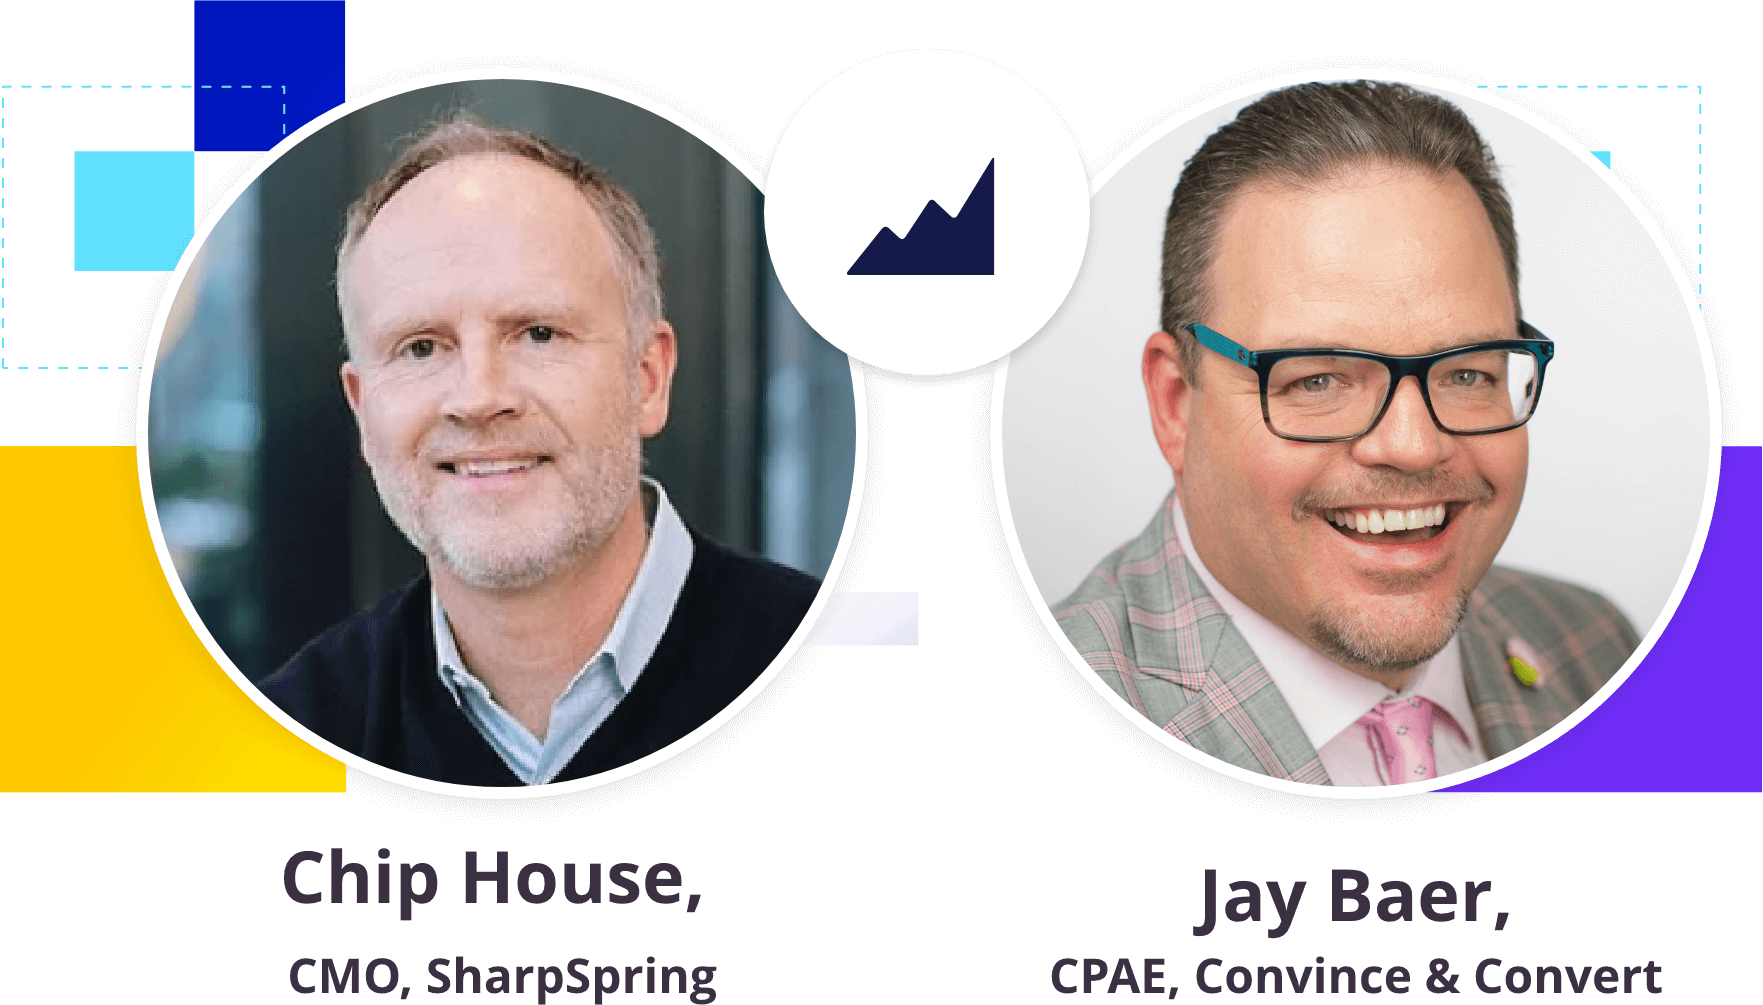 pictures of Jay Baer and Chip House